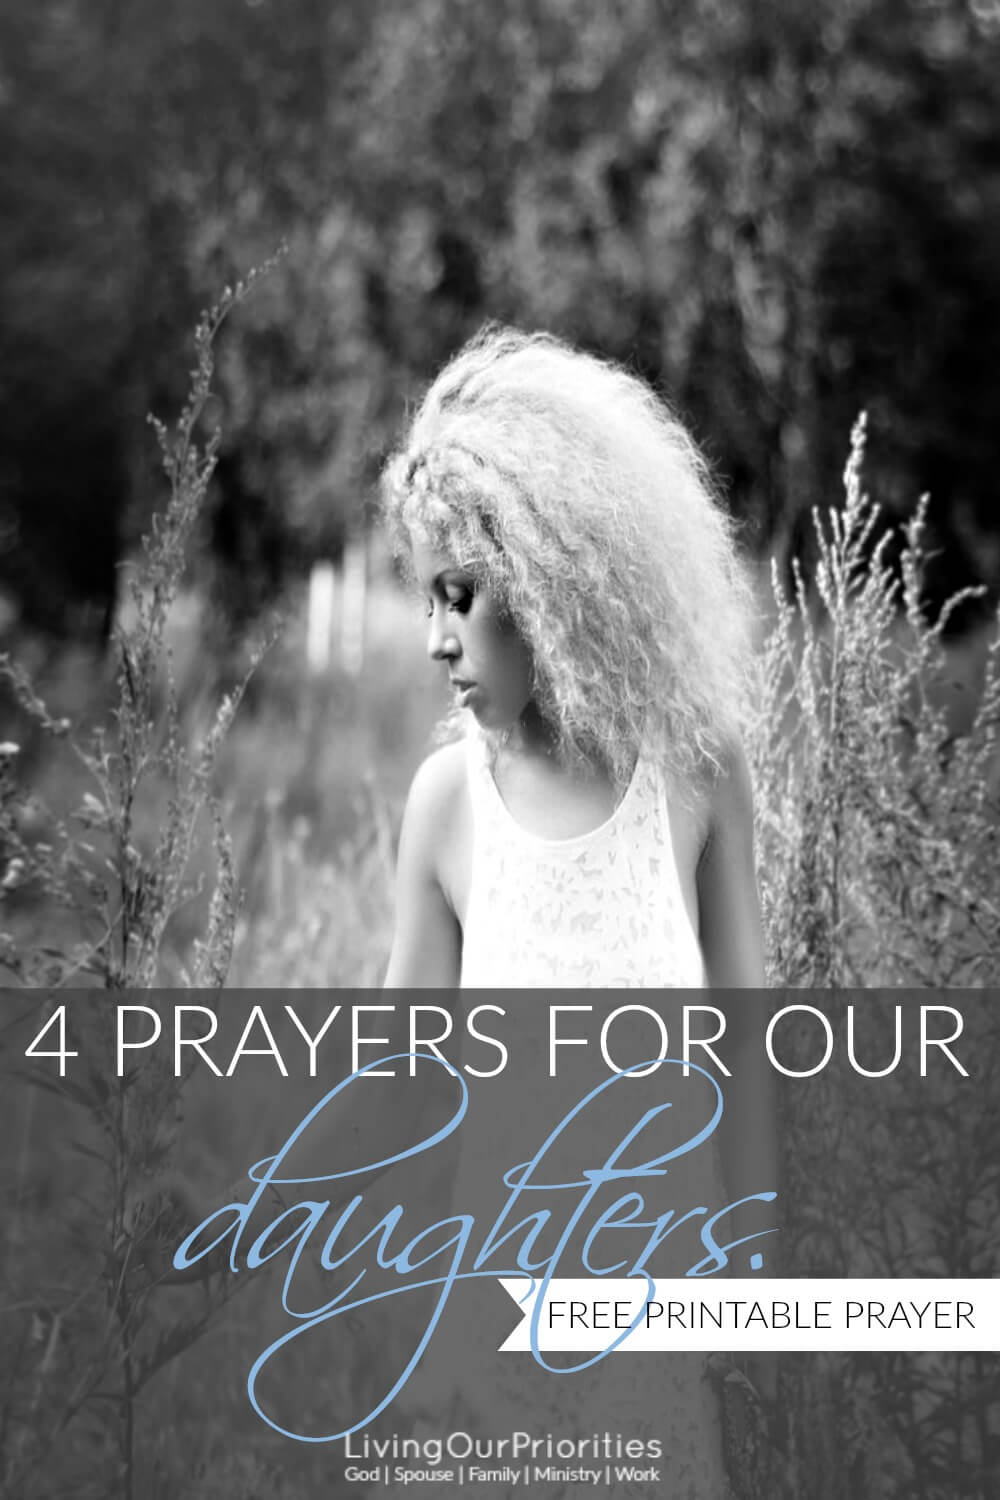 Raising our daughters is no small feat today. But with God's help and through prayer we can help lead our daughters on the right path. Learn how with 4 prayers for daughters.